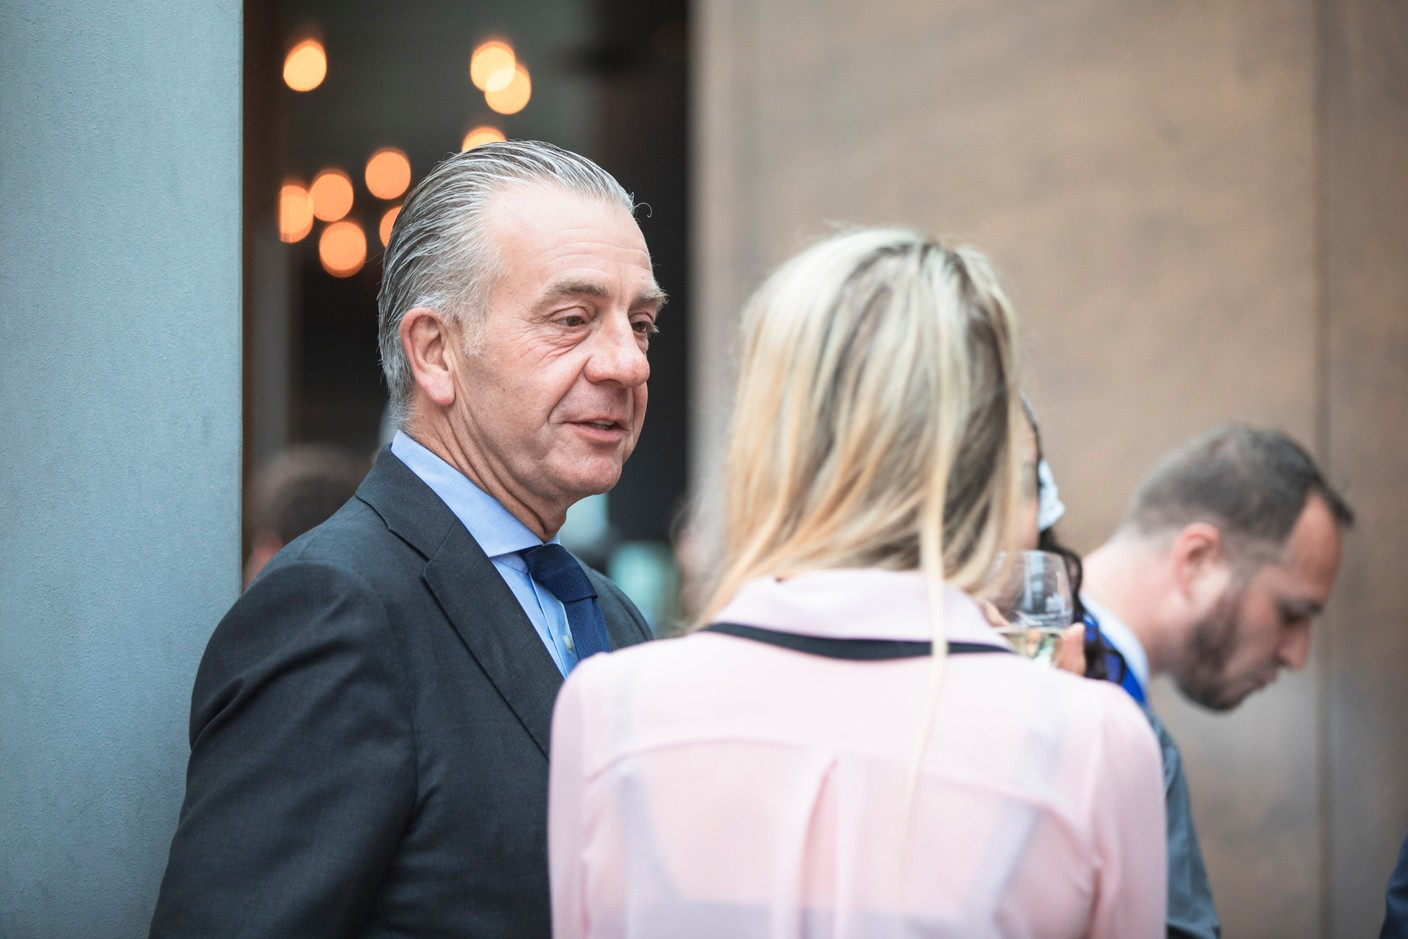 Bob Kneip of Kneip is pictured at Delano's 10th anniversary party, 13 July 2021. Simon Verjus/Maison Moderne